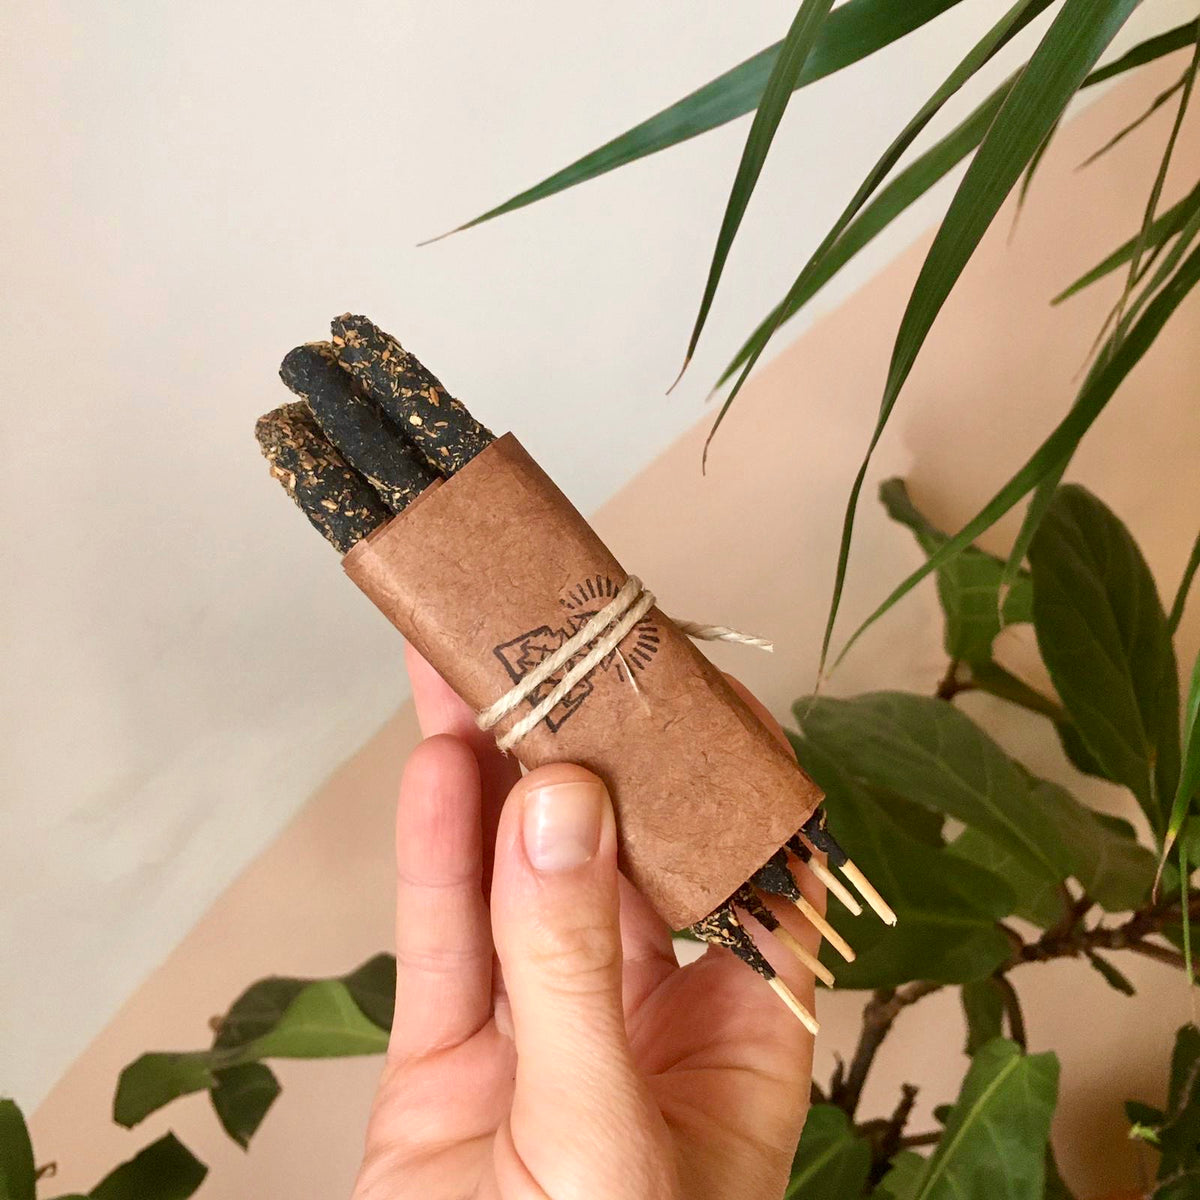 Incausa - Breu Resin Palo Santo Incense Bundle